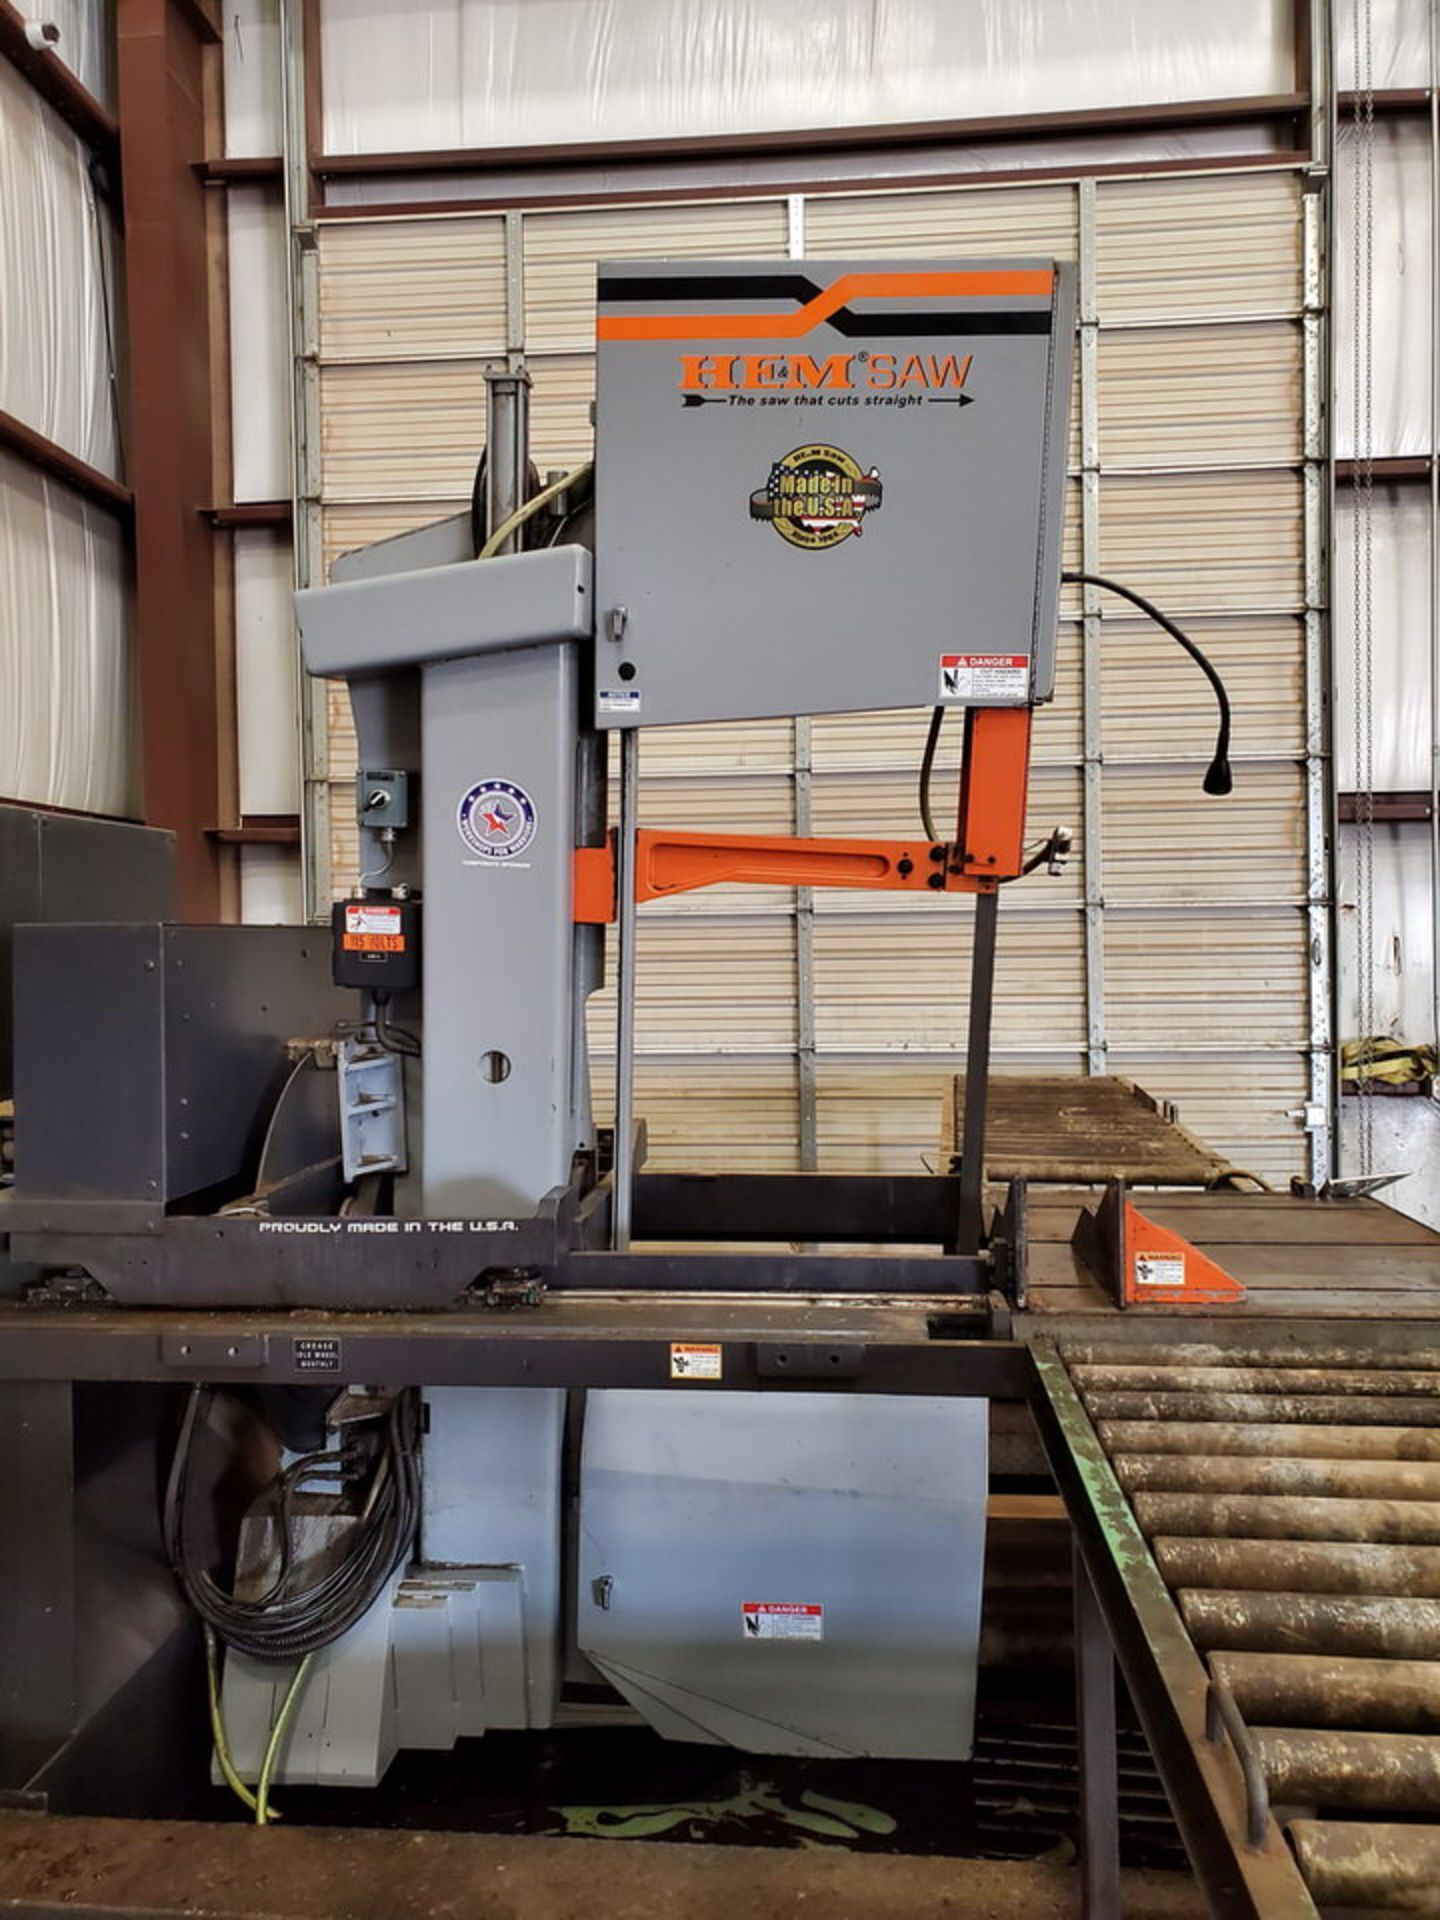 "HEM VT140HM-60-CTS Vertical Bandsaw 440V, 10HP, 23.61A, Blade L: 1-1/2"" x 20' x .050""; W/ Spare - Image 3 of 16"